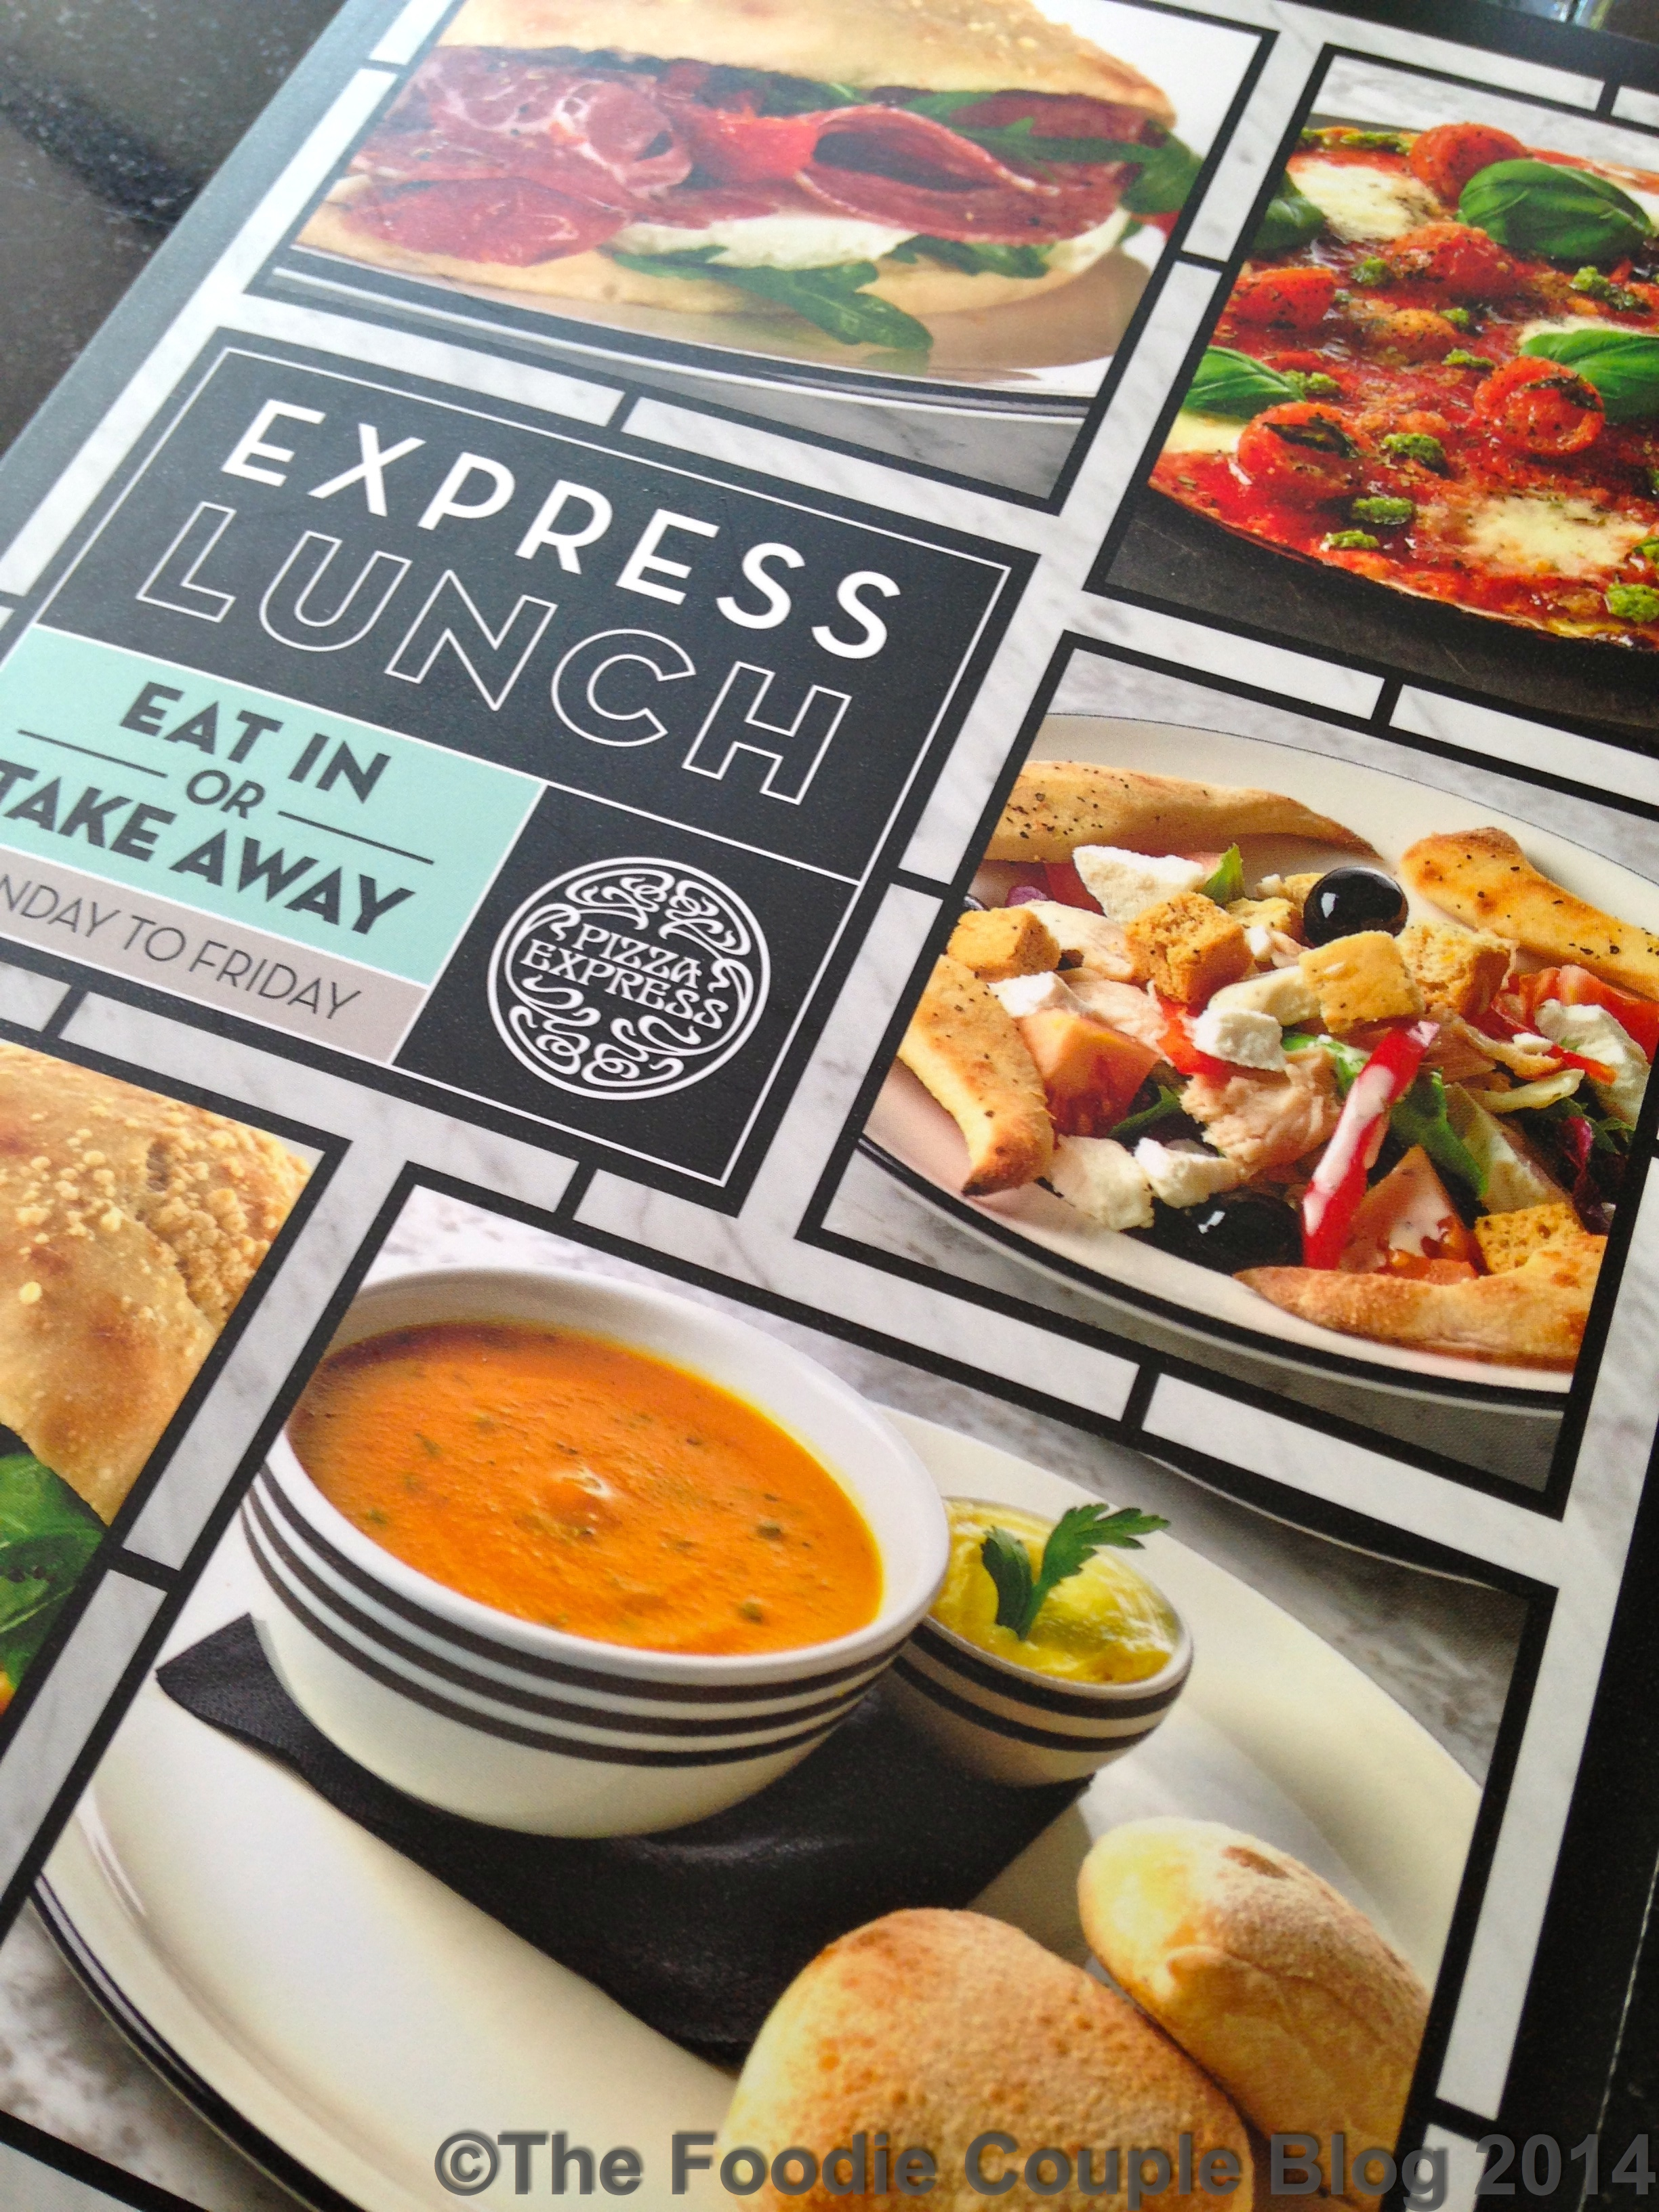 Review Pizza Express Express Lunch Menu The Foodie